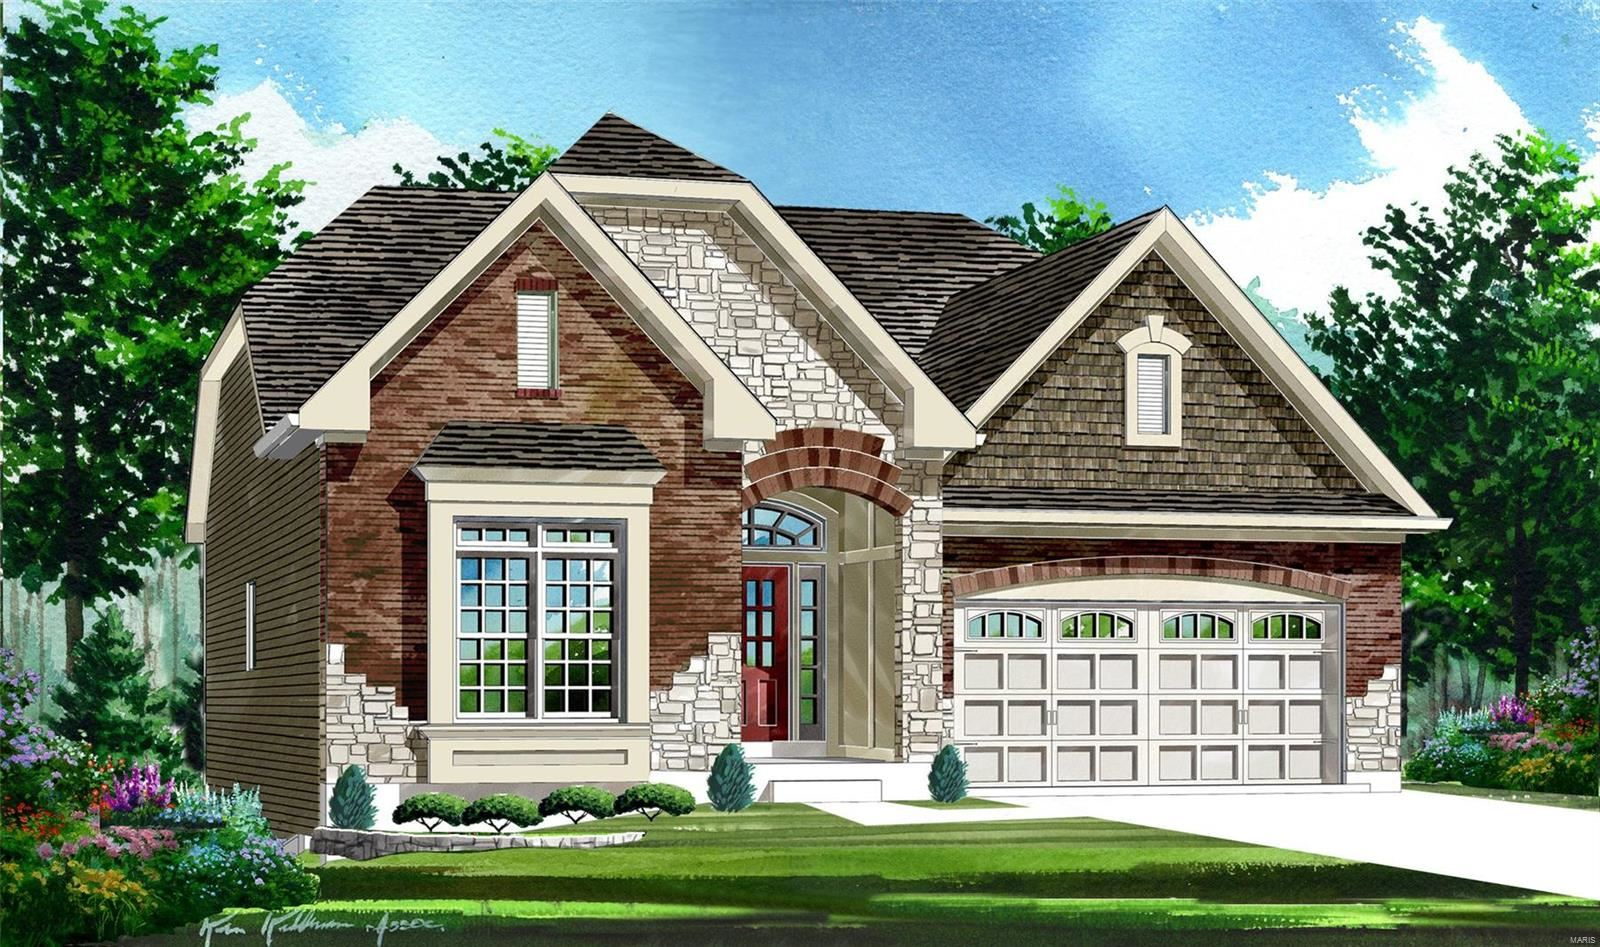 913 Grand Reserve (Lot 19) #Cabernet, Chesterfield, MO 63017 - MLS#: 21003780